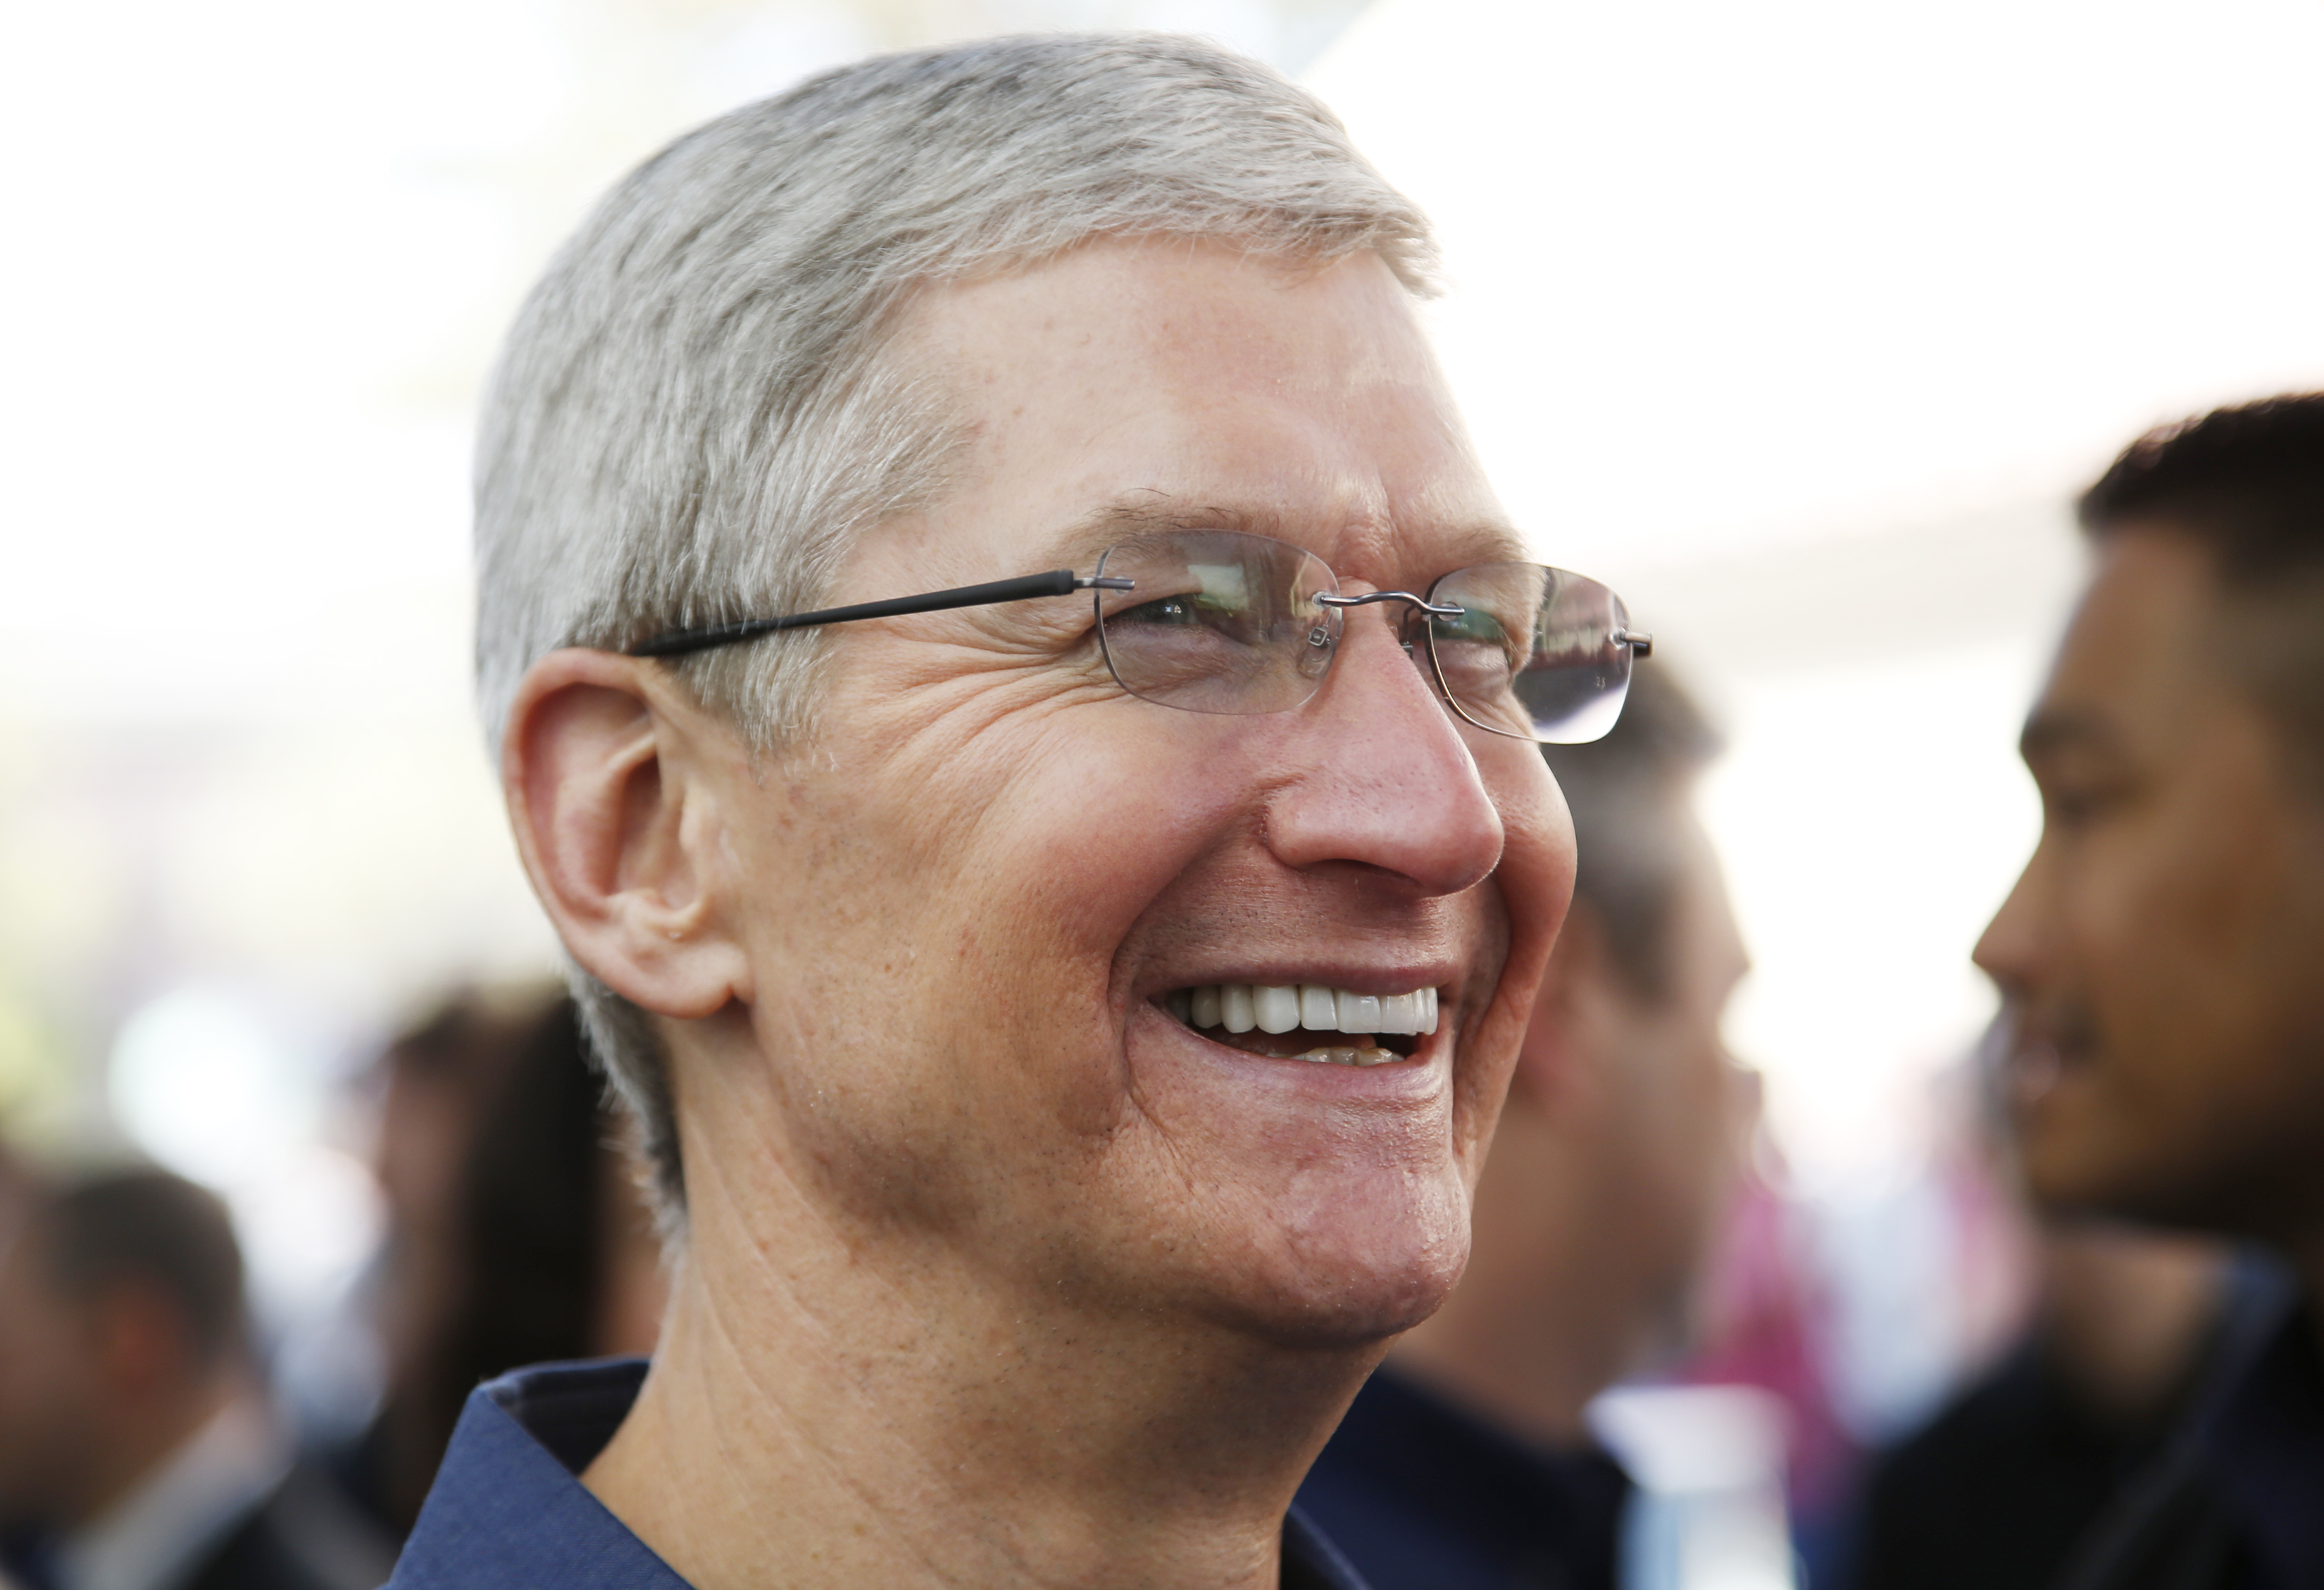 Thrilled by the response apple ceo tim cook said in a tweet that it - Apple Ceo Tim Cook Says He S Gay And It May Not Matter In China S Conservative Market